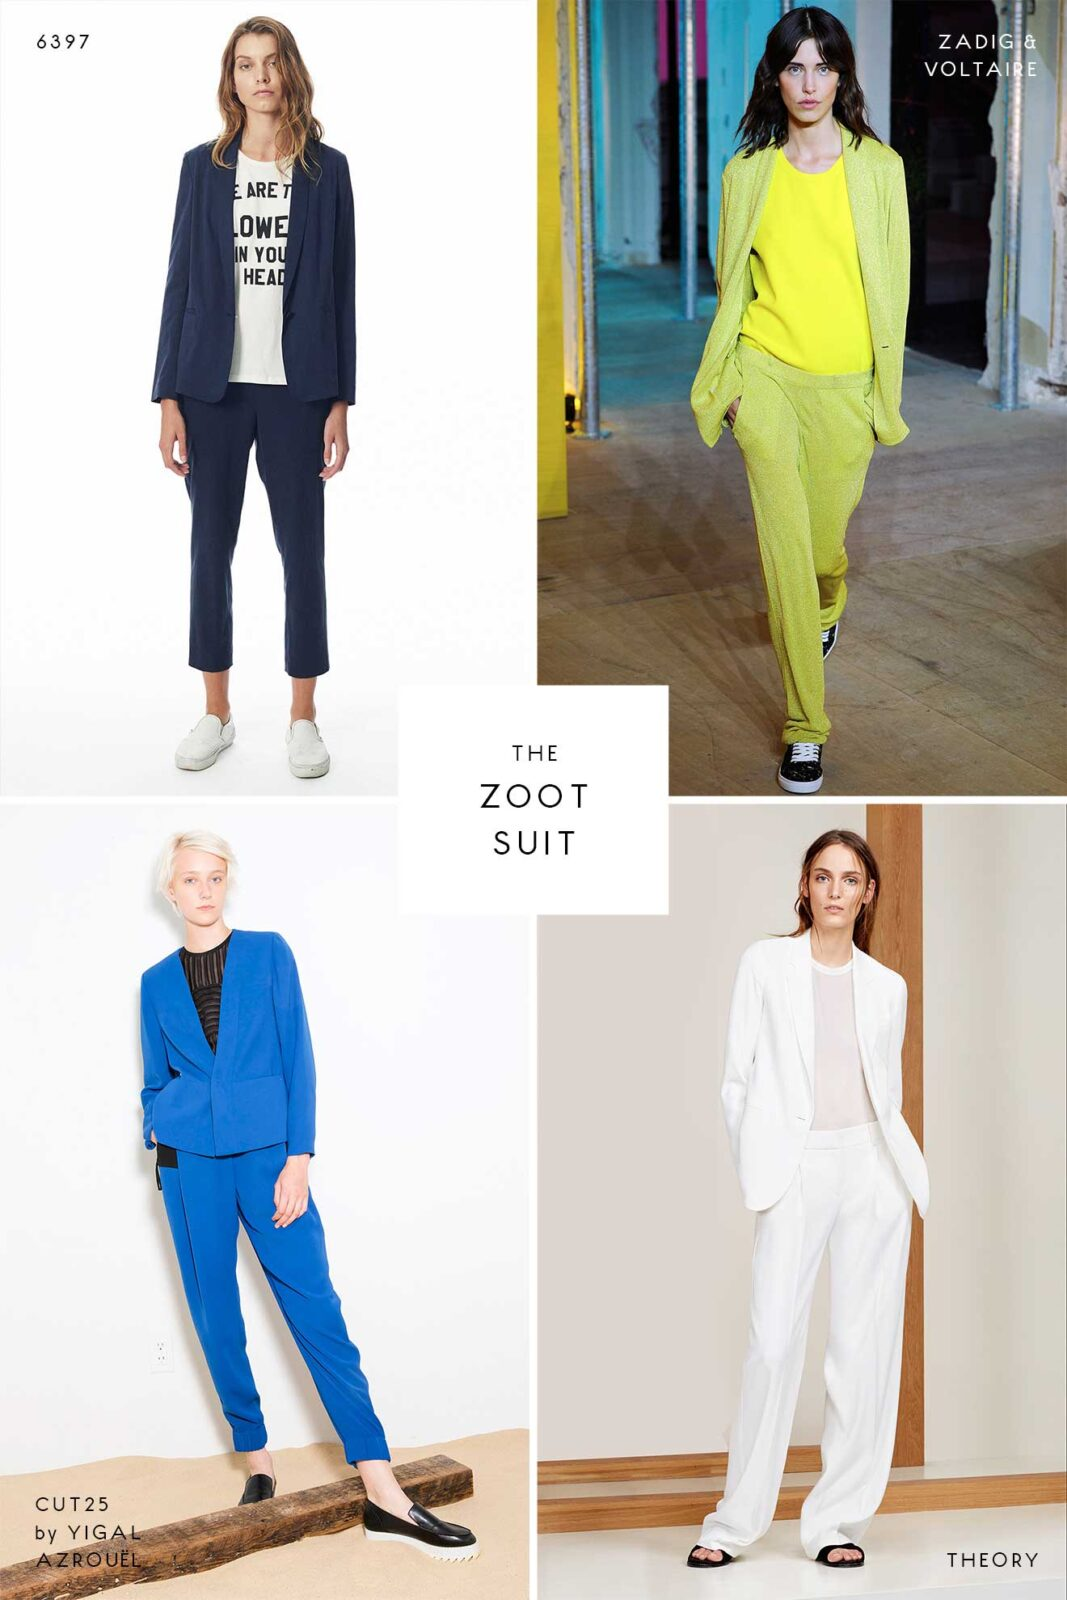 SS15 favourites by Miss Moss